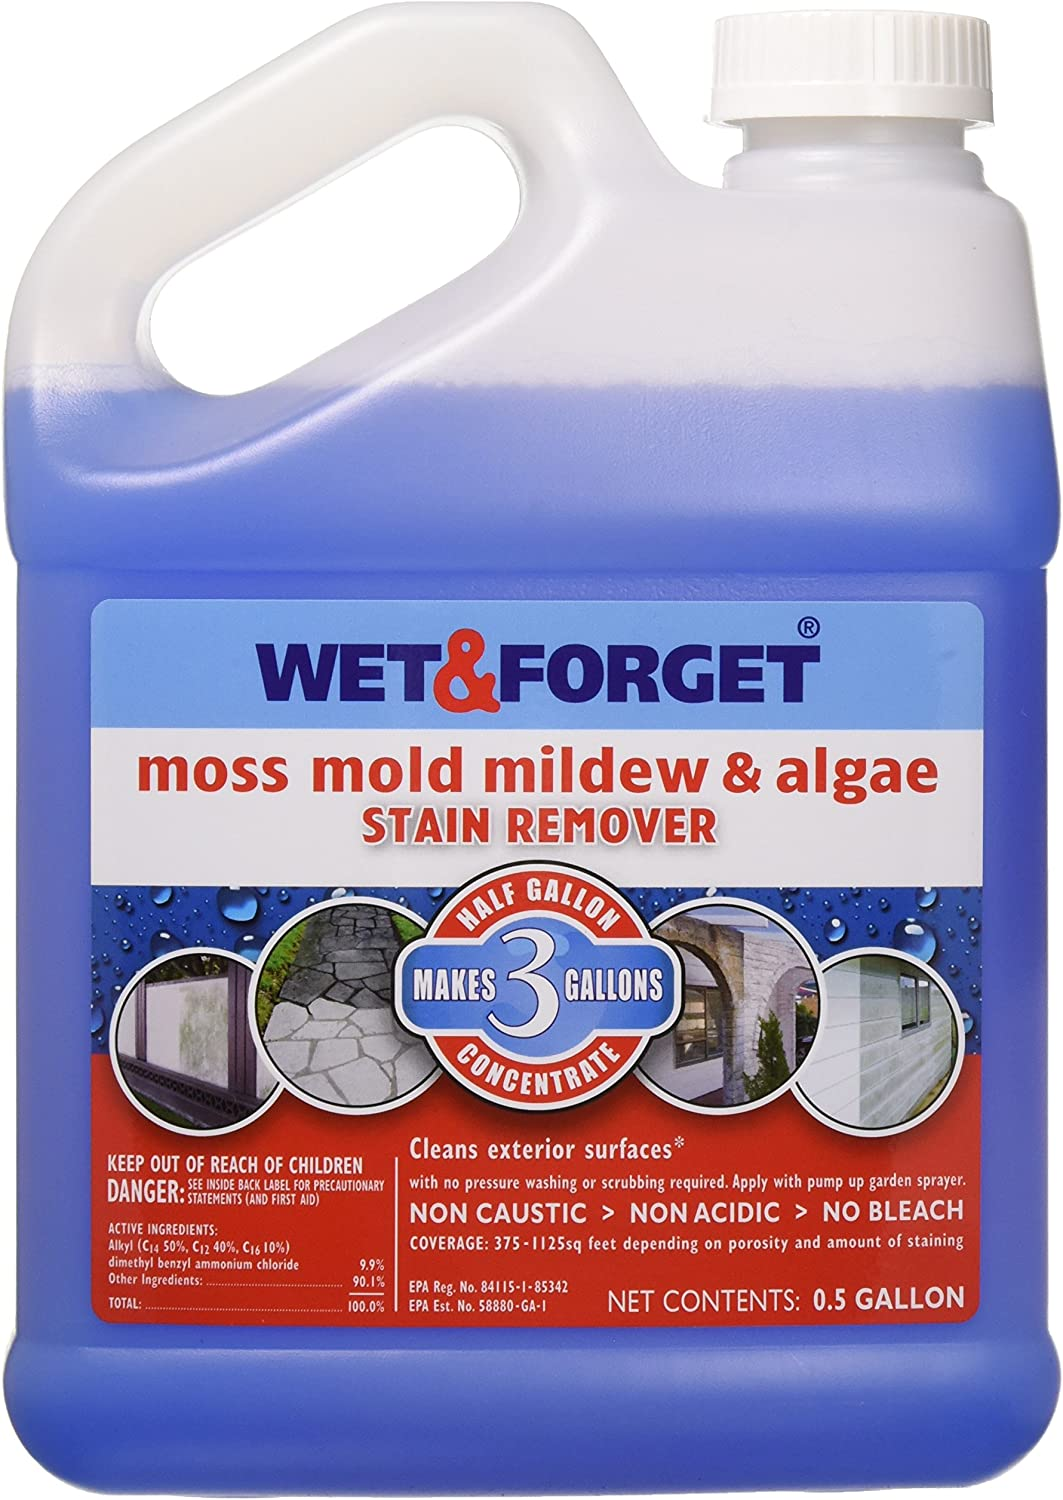 Best Biodegradable Deck cleaner: Wet and Forget 800003 Deck Cleaner